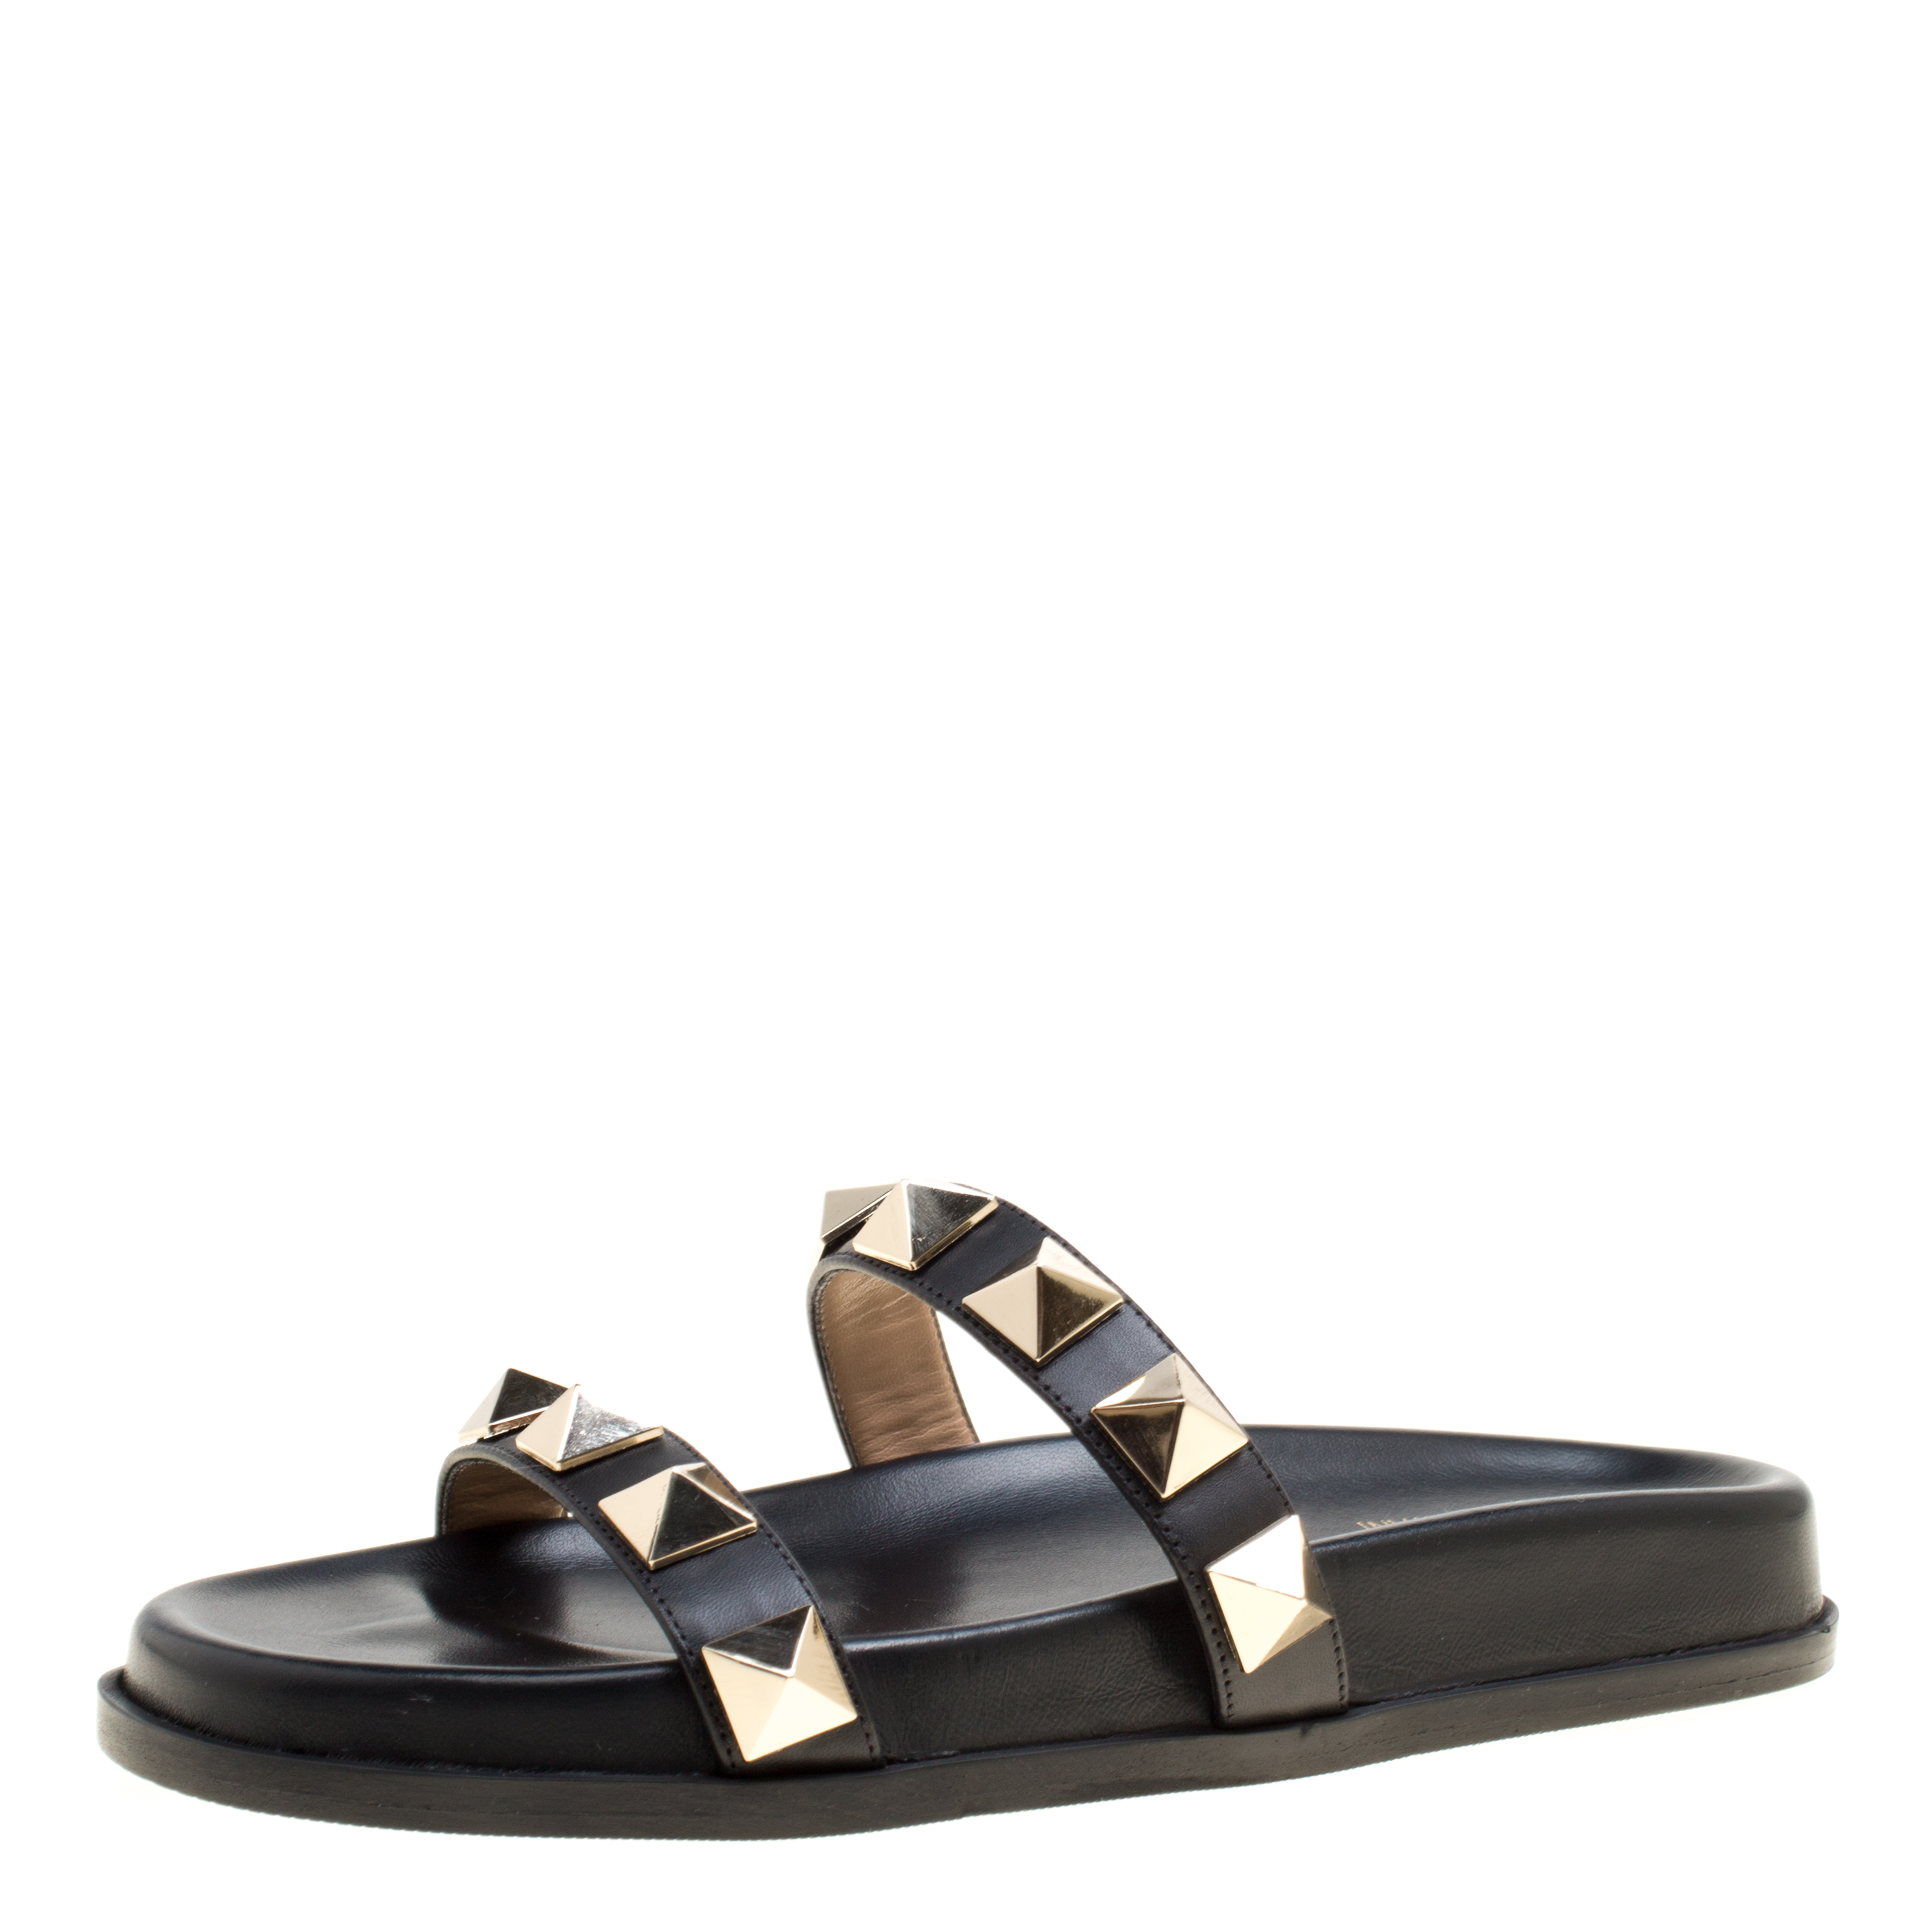 a54c277c4368 Buy valentino black leather two band rockstud slide sandals size jpg  3104x3104 Two straps slides women